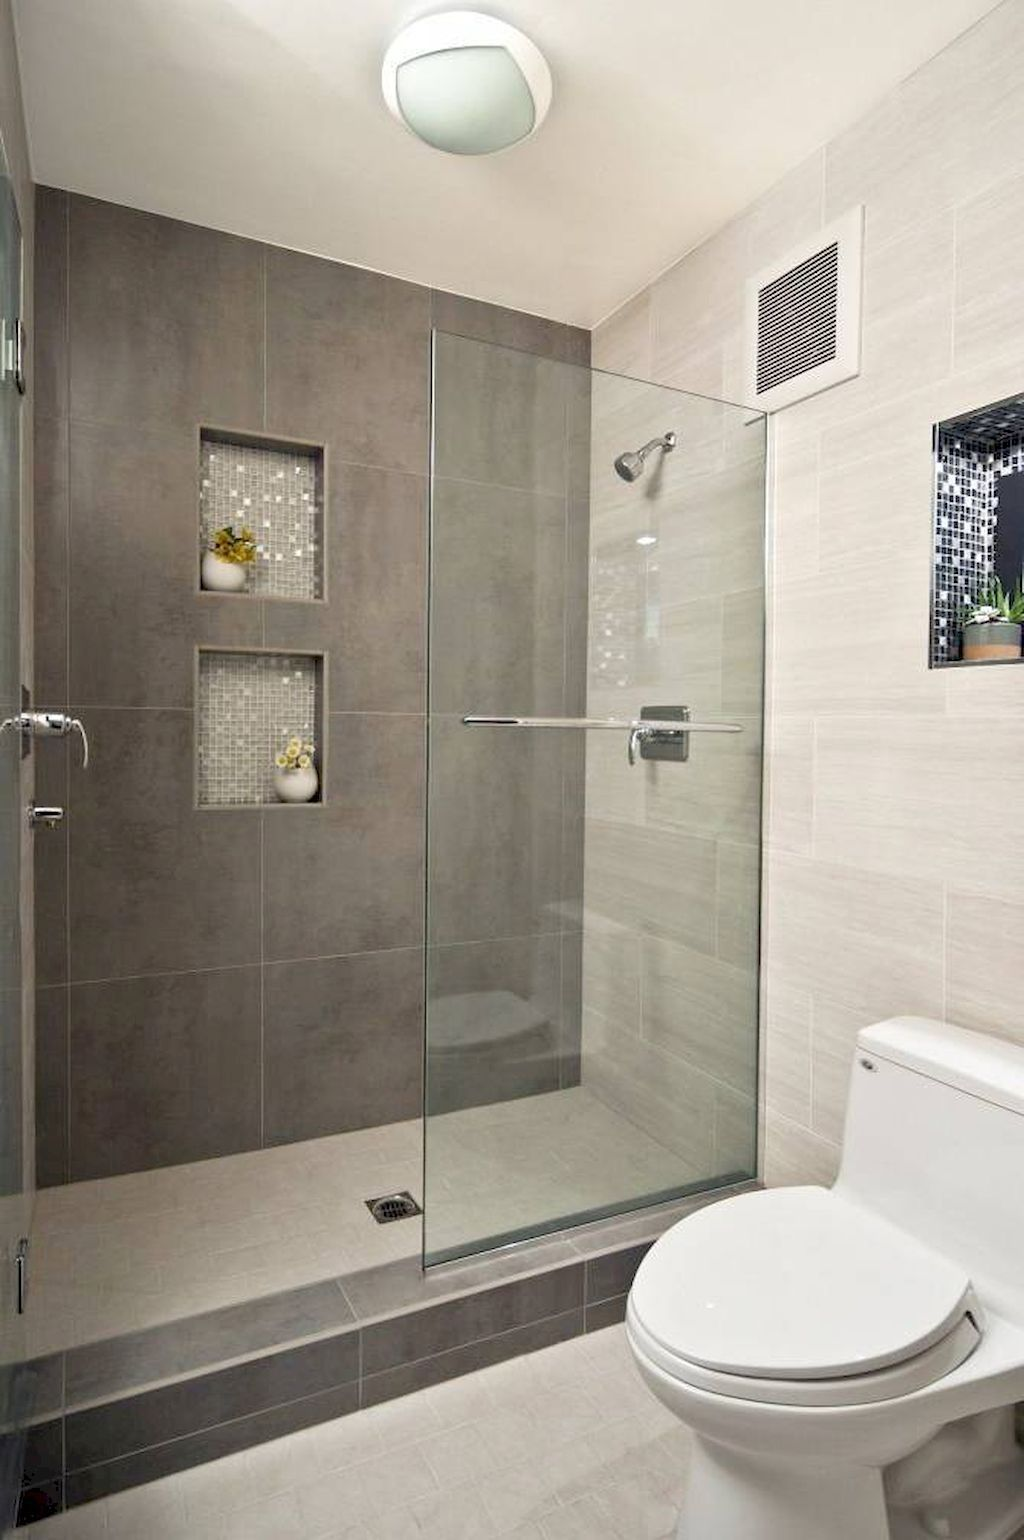 80 Stunning Tile Shower Designs Ideas For Bathroom Remodel 44